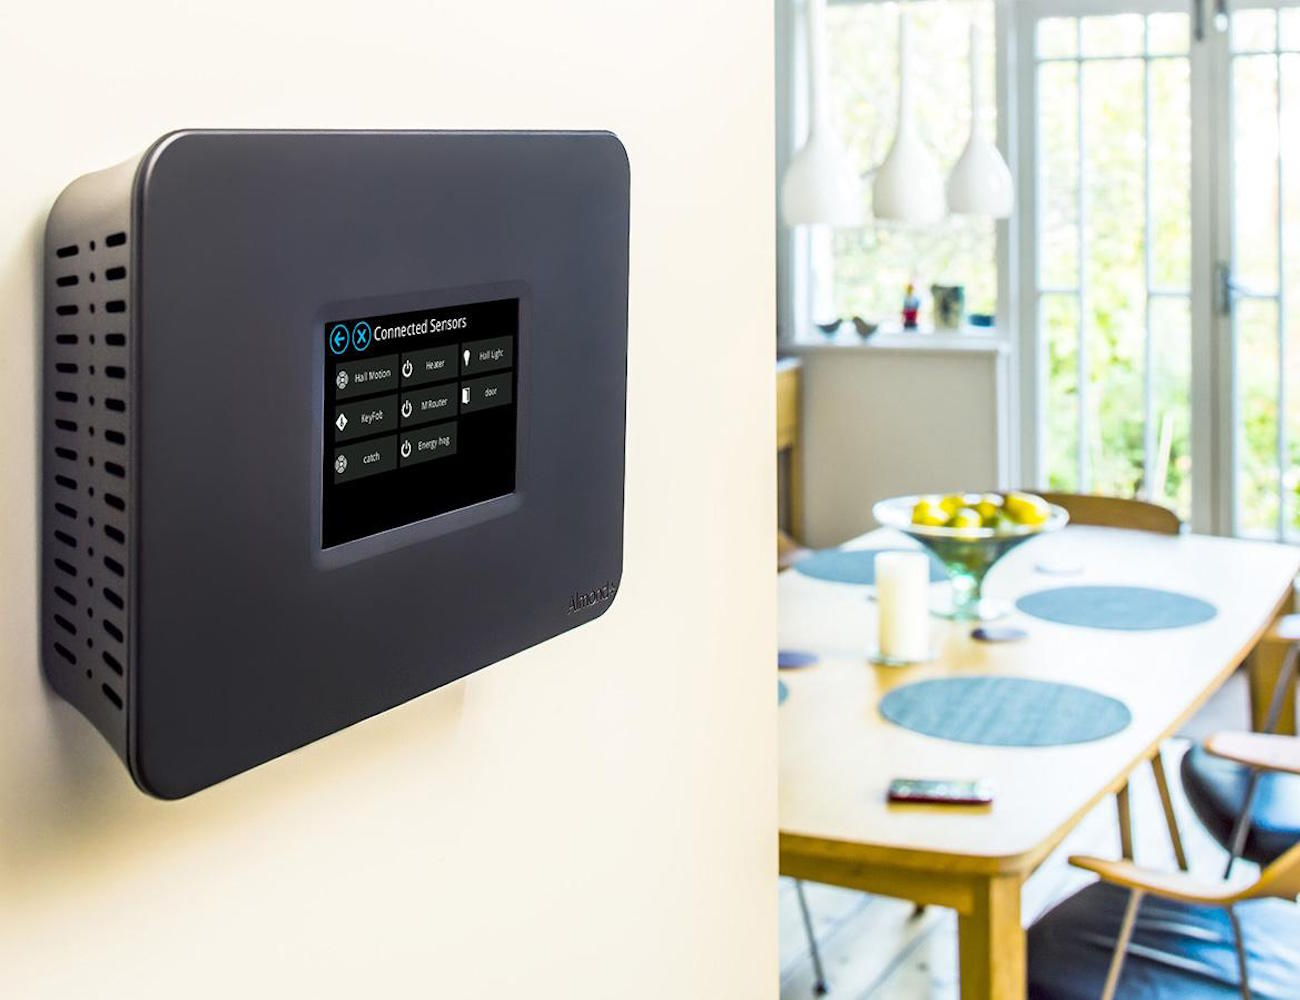 Securifi+Almond+%E2%80%93+The+Most+Intuitive+Router+And+Home+Automation+Hub